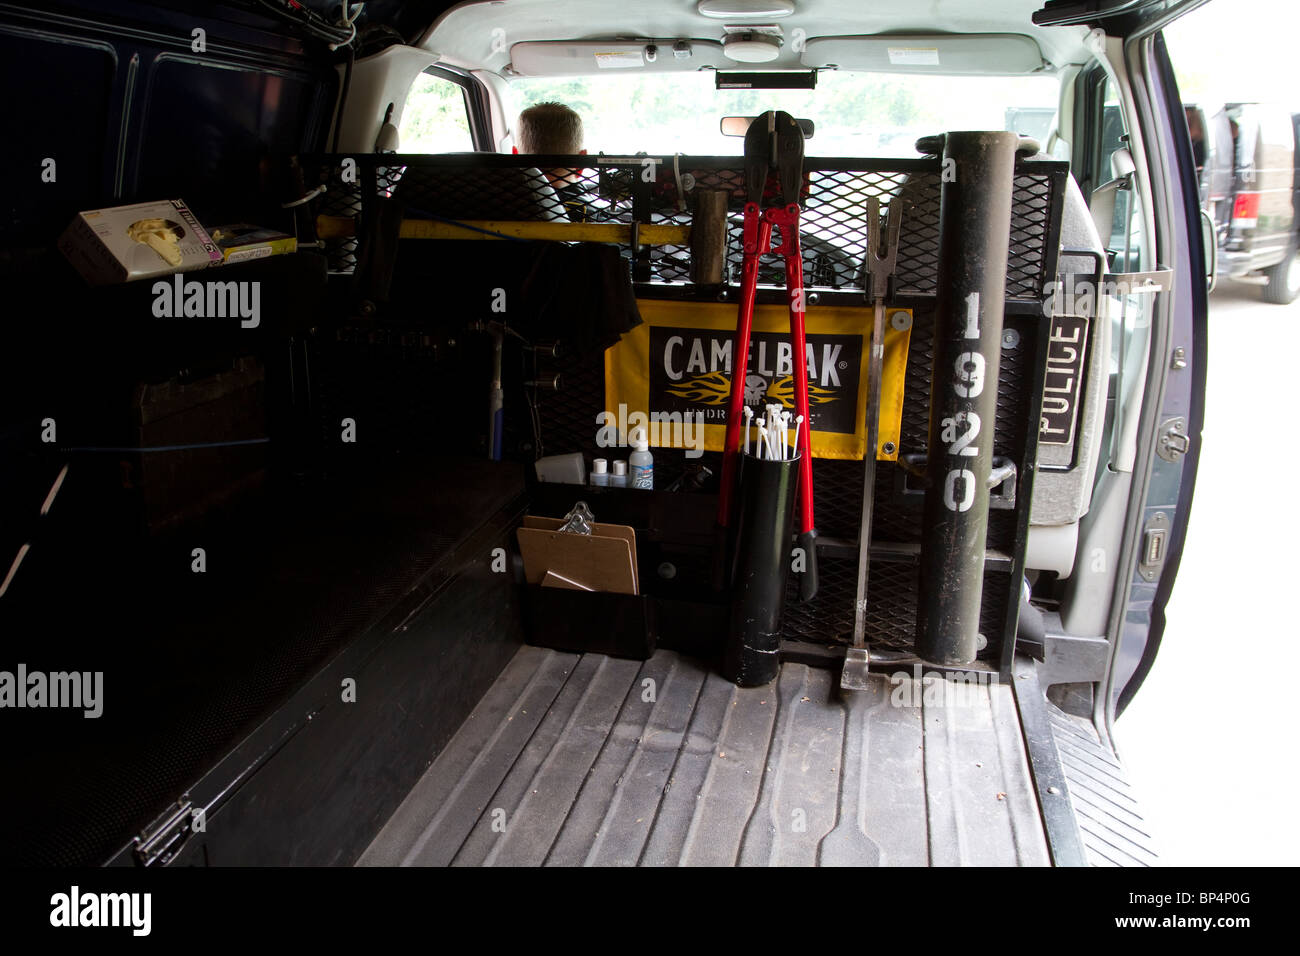 Inside police swat van. Entry tools. Bolt cutters, battering ram, flexicuffs etc. Street Narcotics Unit. Kansas - Stock Image